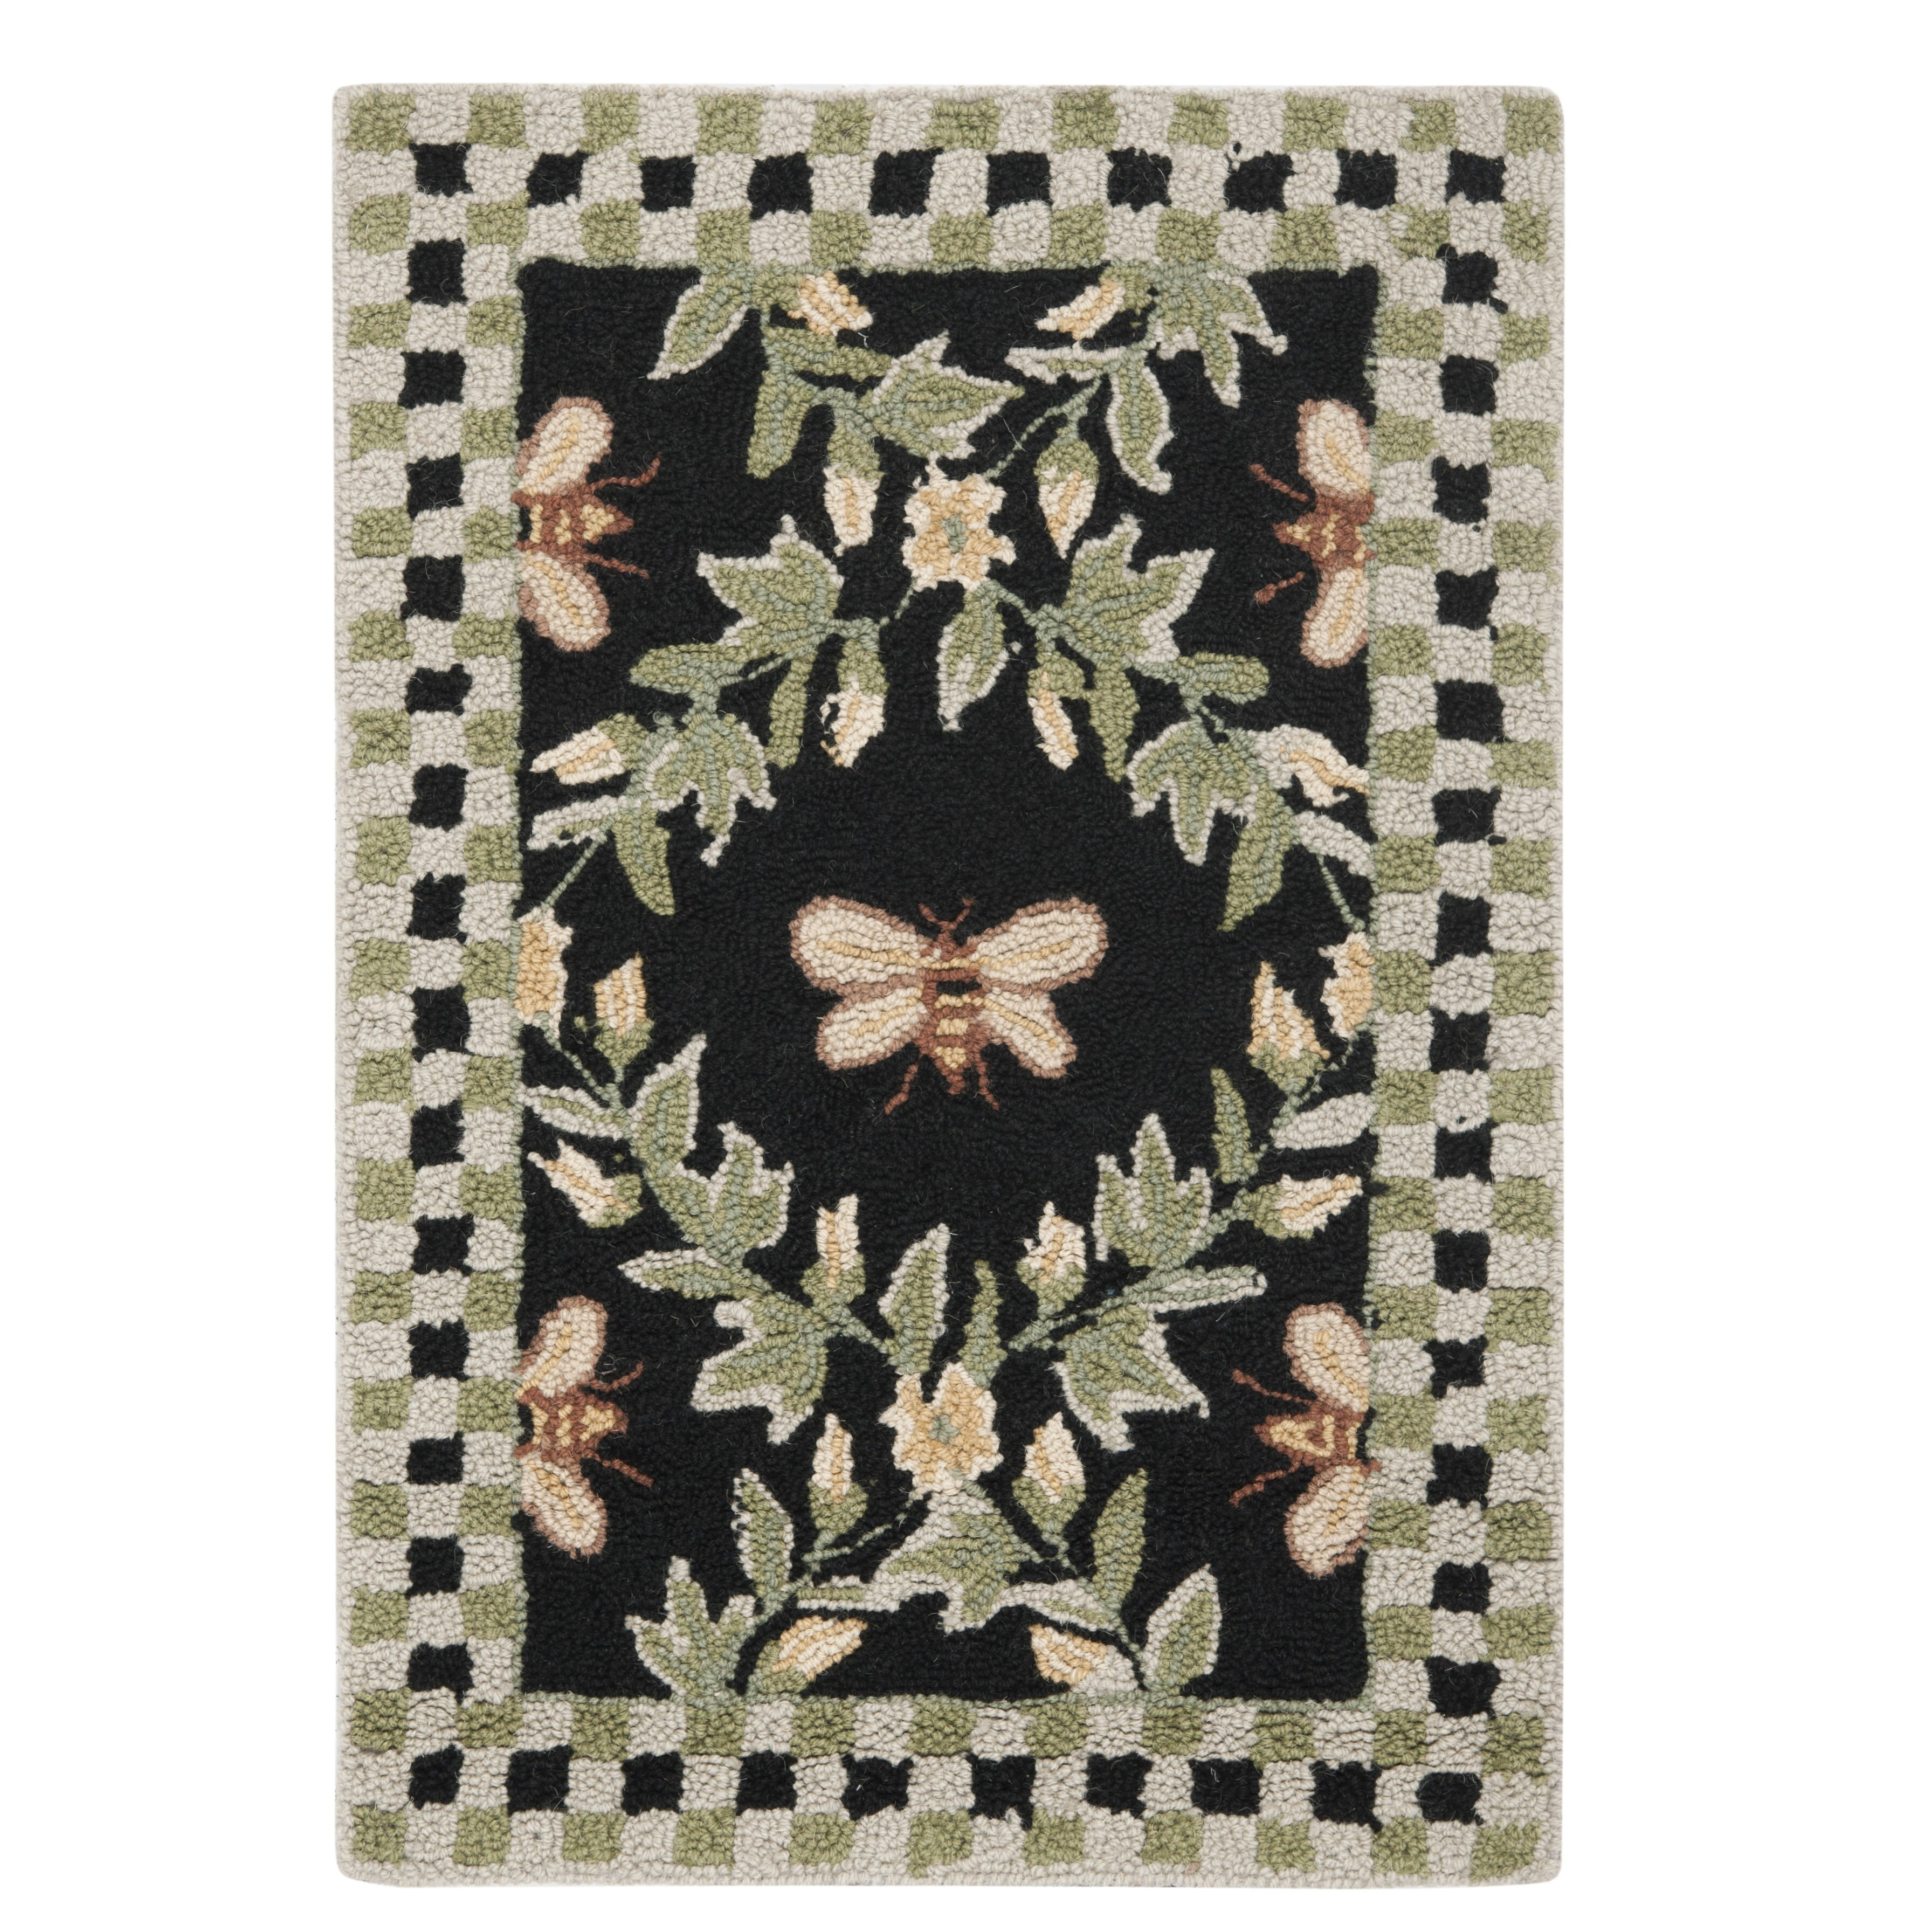 Dog Eating Wool Rug: Safavieh Chelsea Bumblebee Black Novelty Rug & Reviews